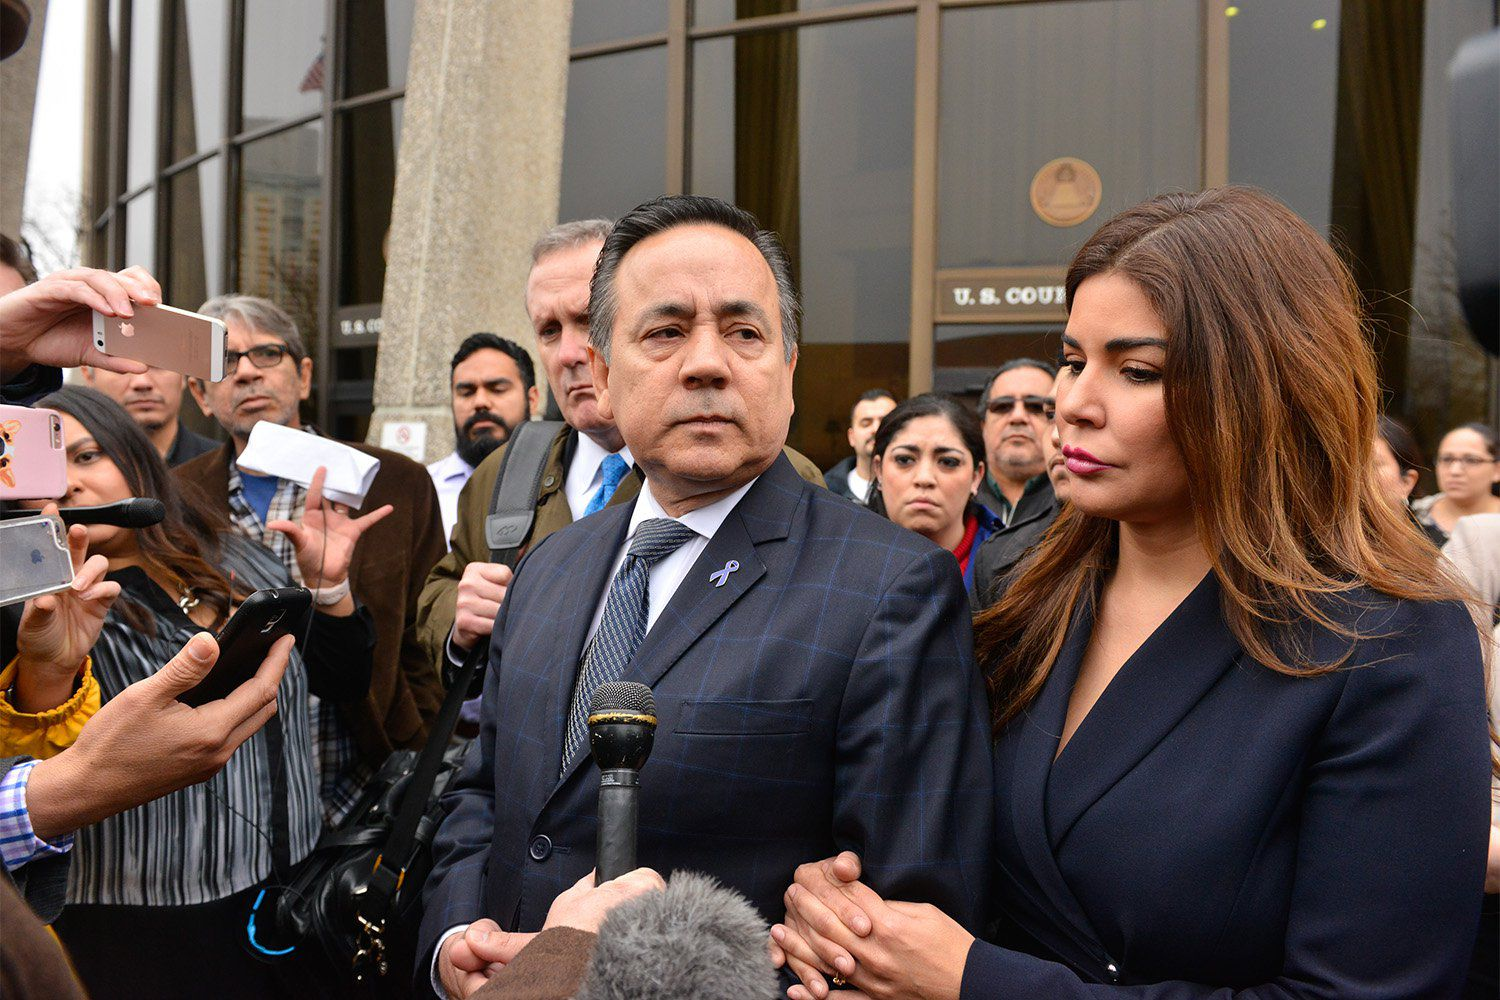 State Sen. Carlos Uresti, D-San Antonio, along with his wife Lleana, leaves the federal courthouse in San Antonio after being convicted on 11 charges on Thursday morning, Feb 22, 2018.